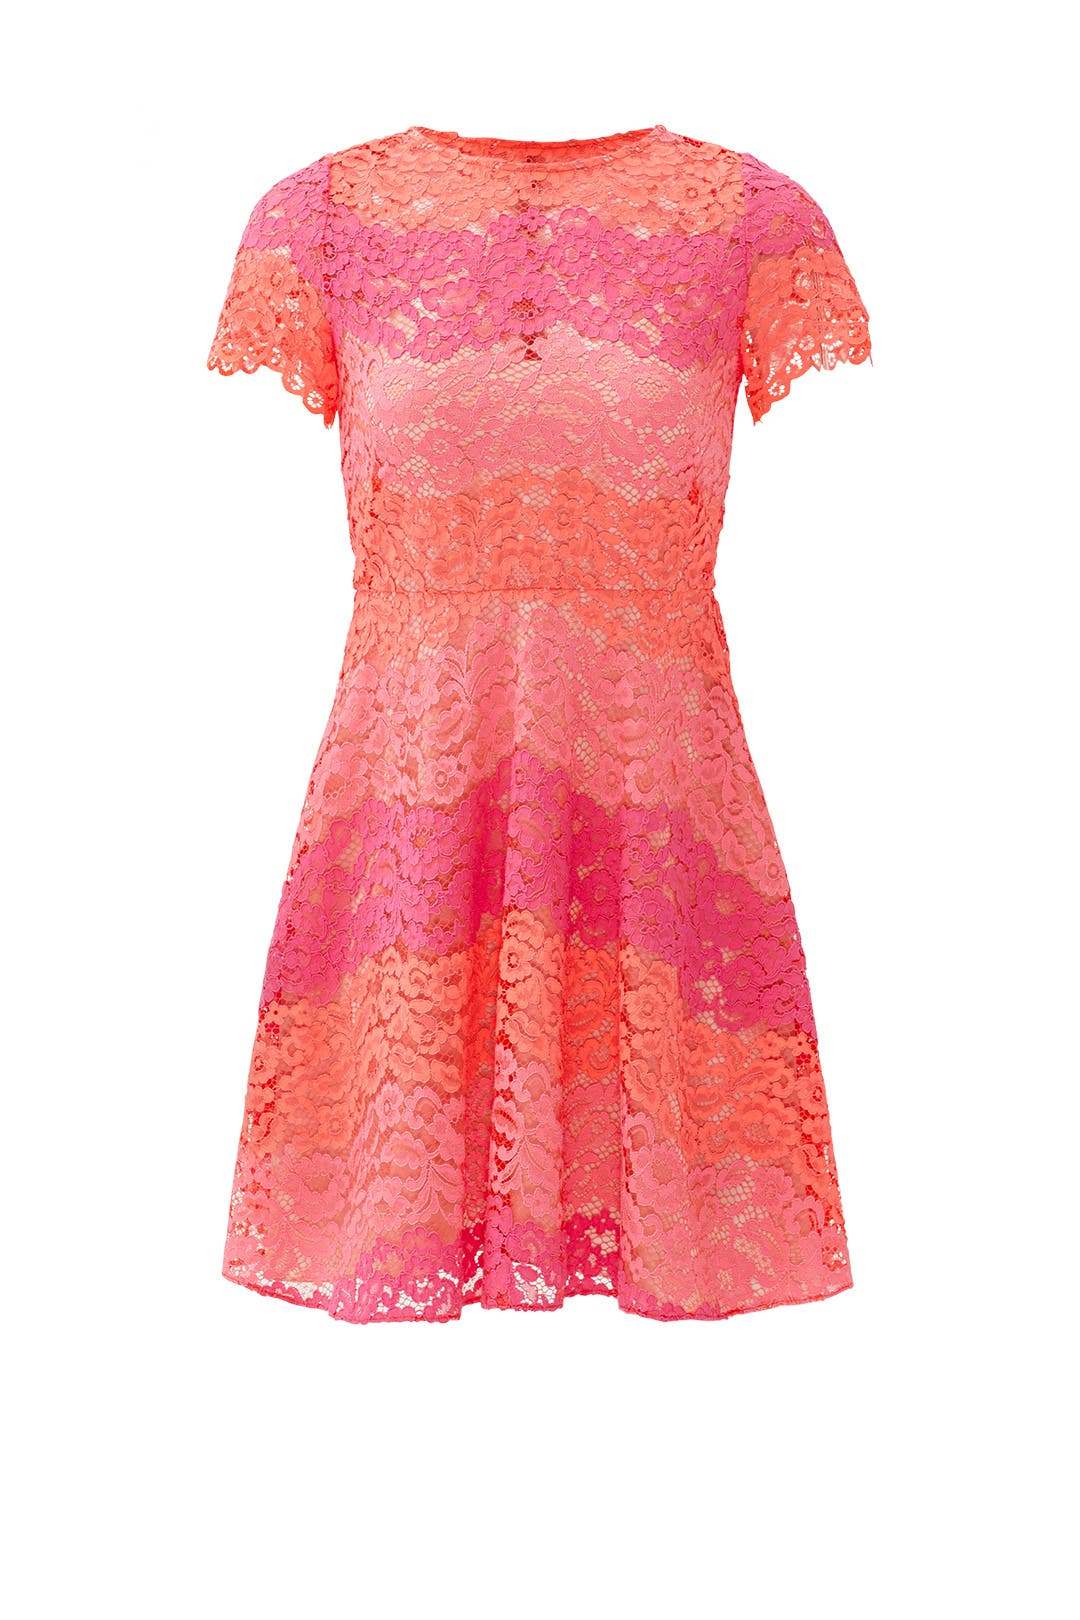 Pink Multi Rio Dress by Shoshanna for $45 - $65   Rent the Runway